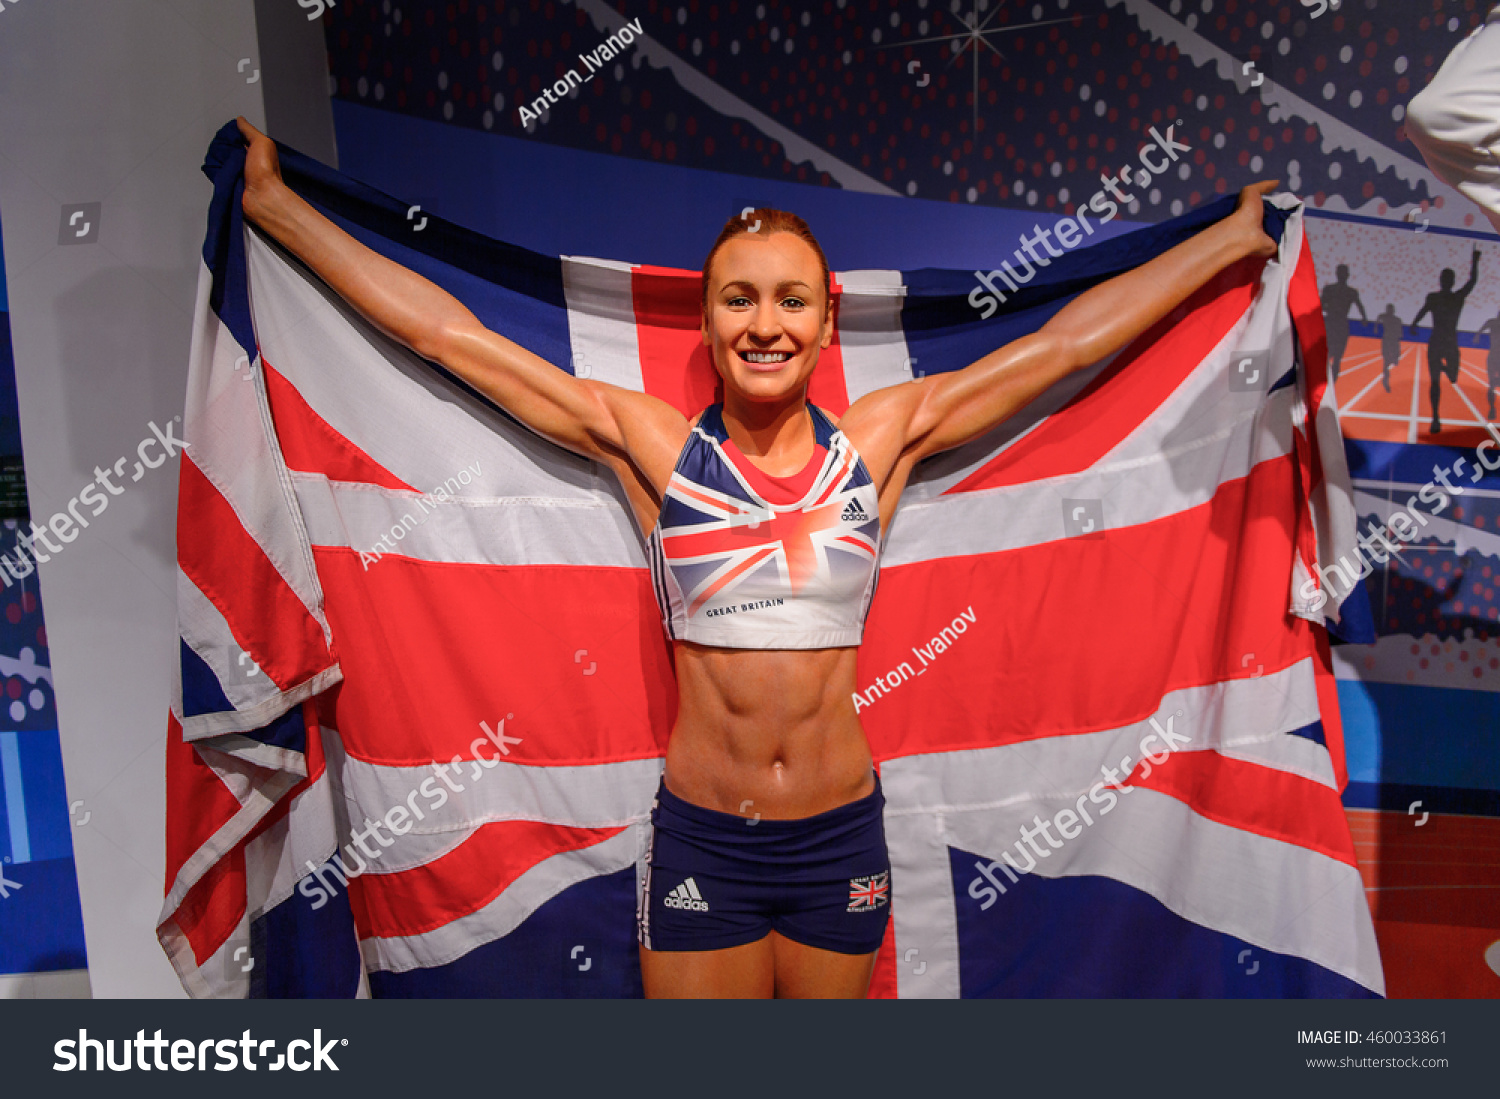 LONDON ENGLAND JULY 22 2016 Brisitsh athlet Jessica Ennis-Hill Madame Tussauds wax museum It is a major tourist attraction in London